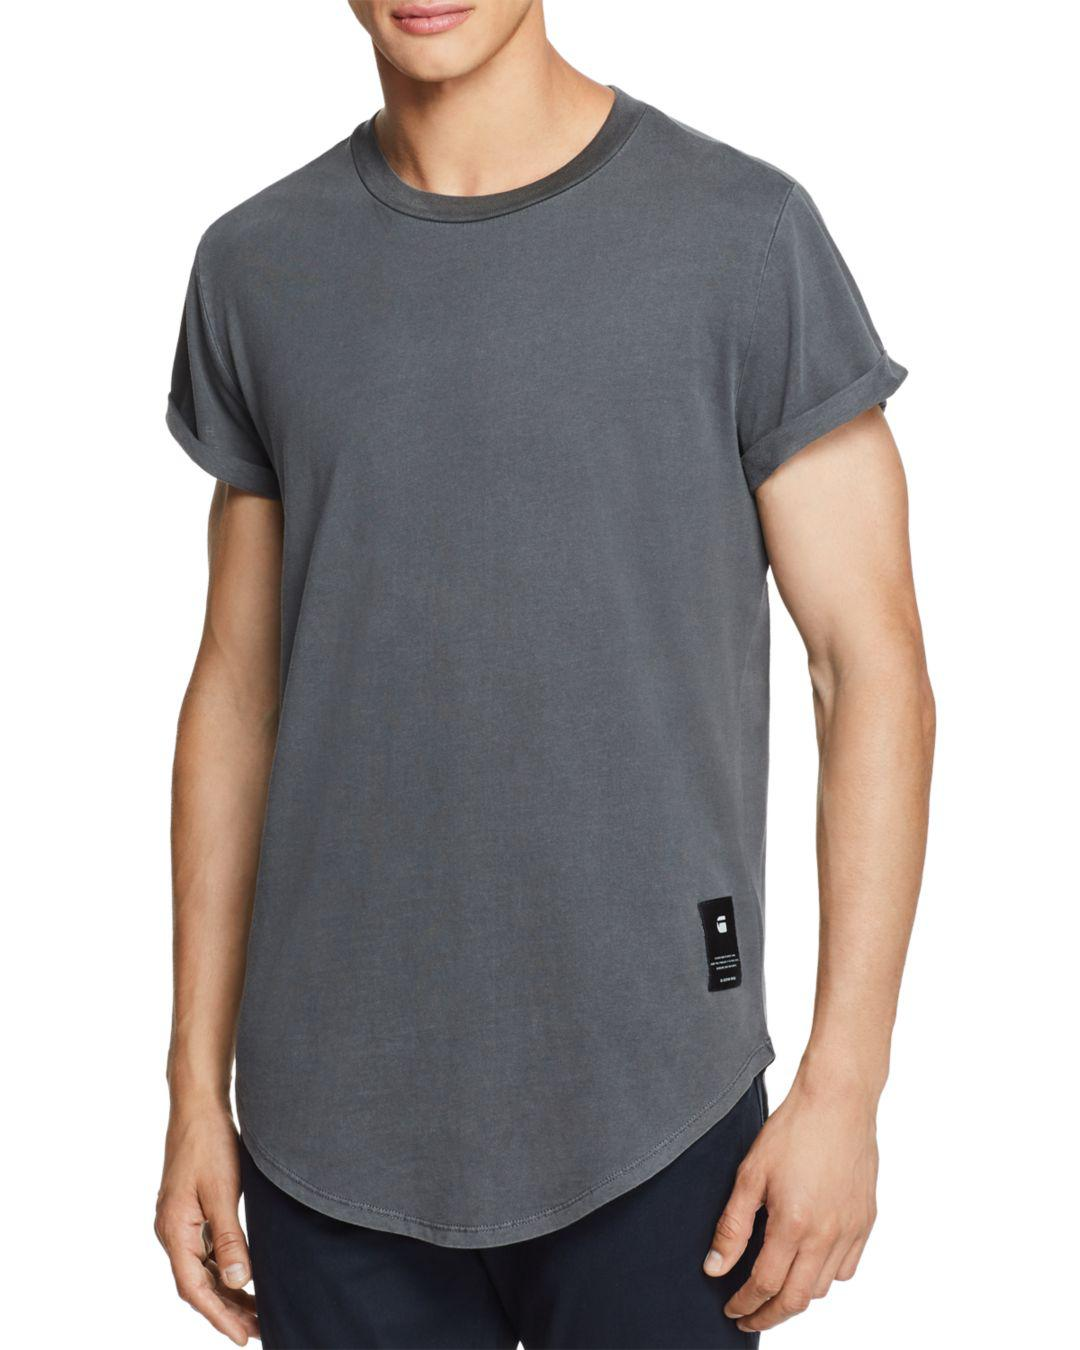 0257ad9fbe3 G-Star RAW Shelo Relaxed Crewneck Tee in Black for Men - Lyst